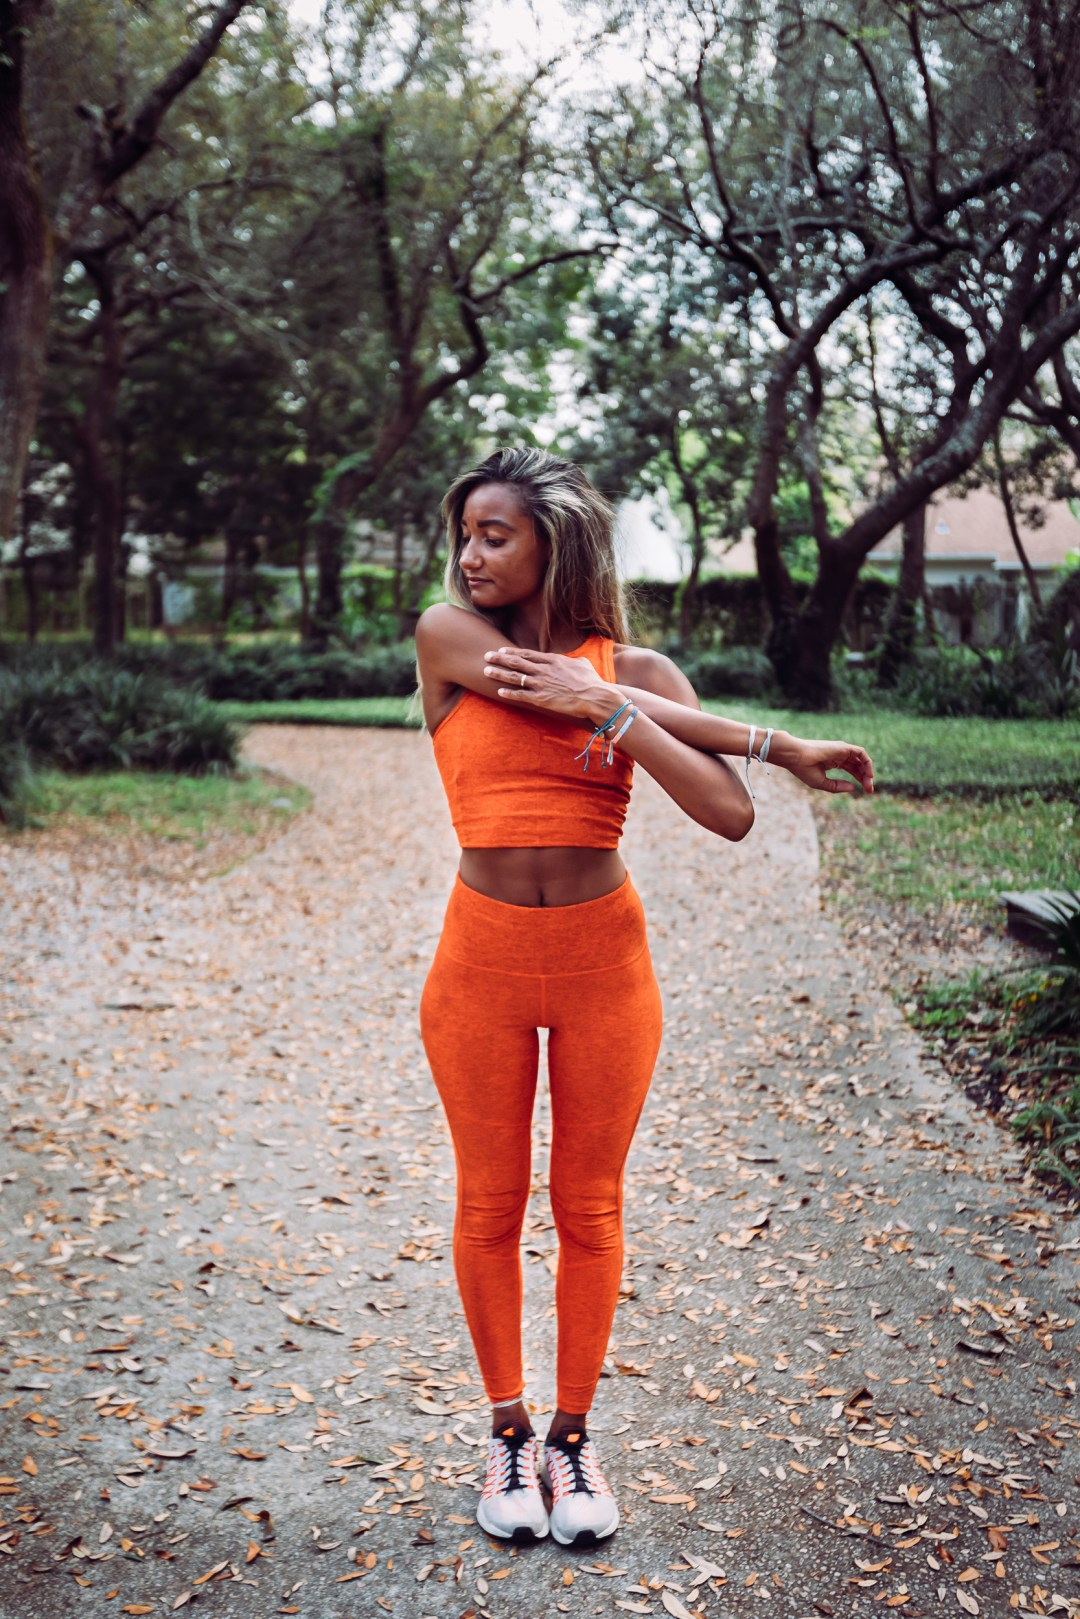 fitness coach stretching in park and posing for brand photos